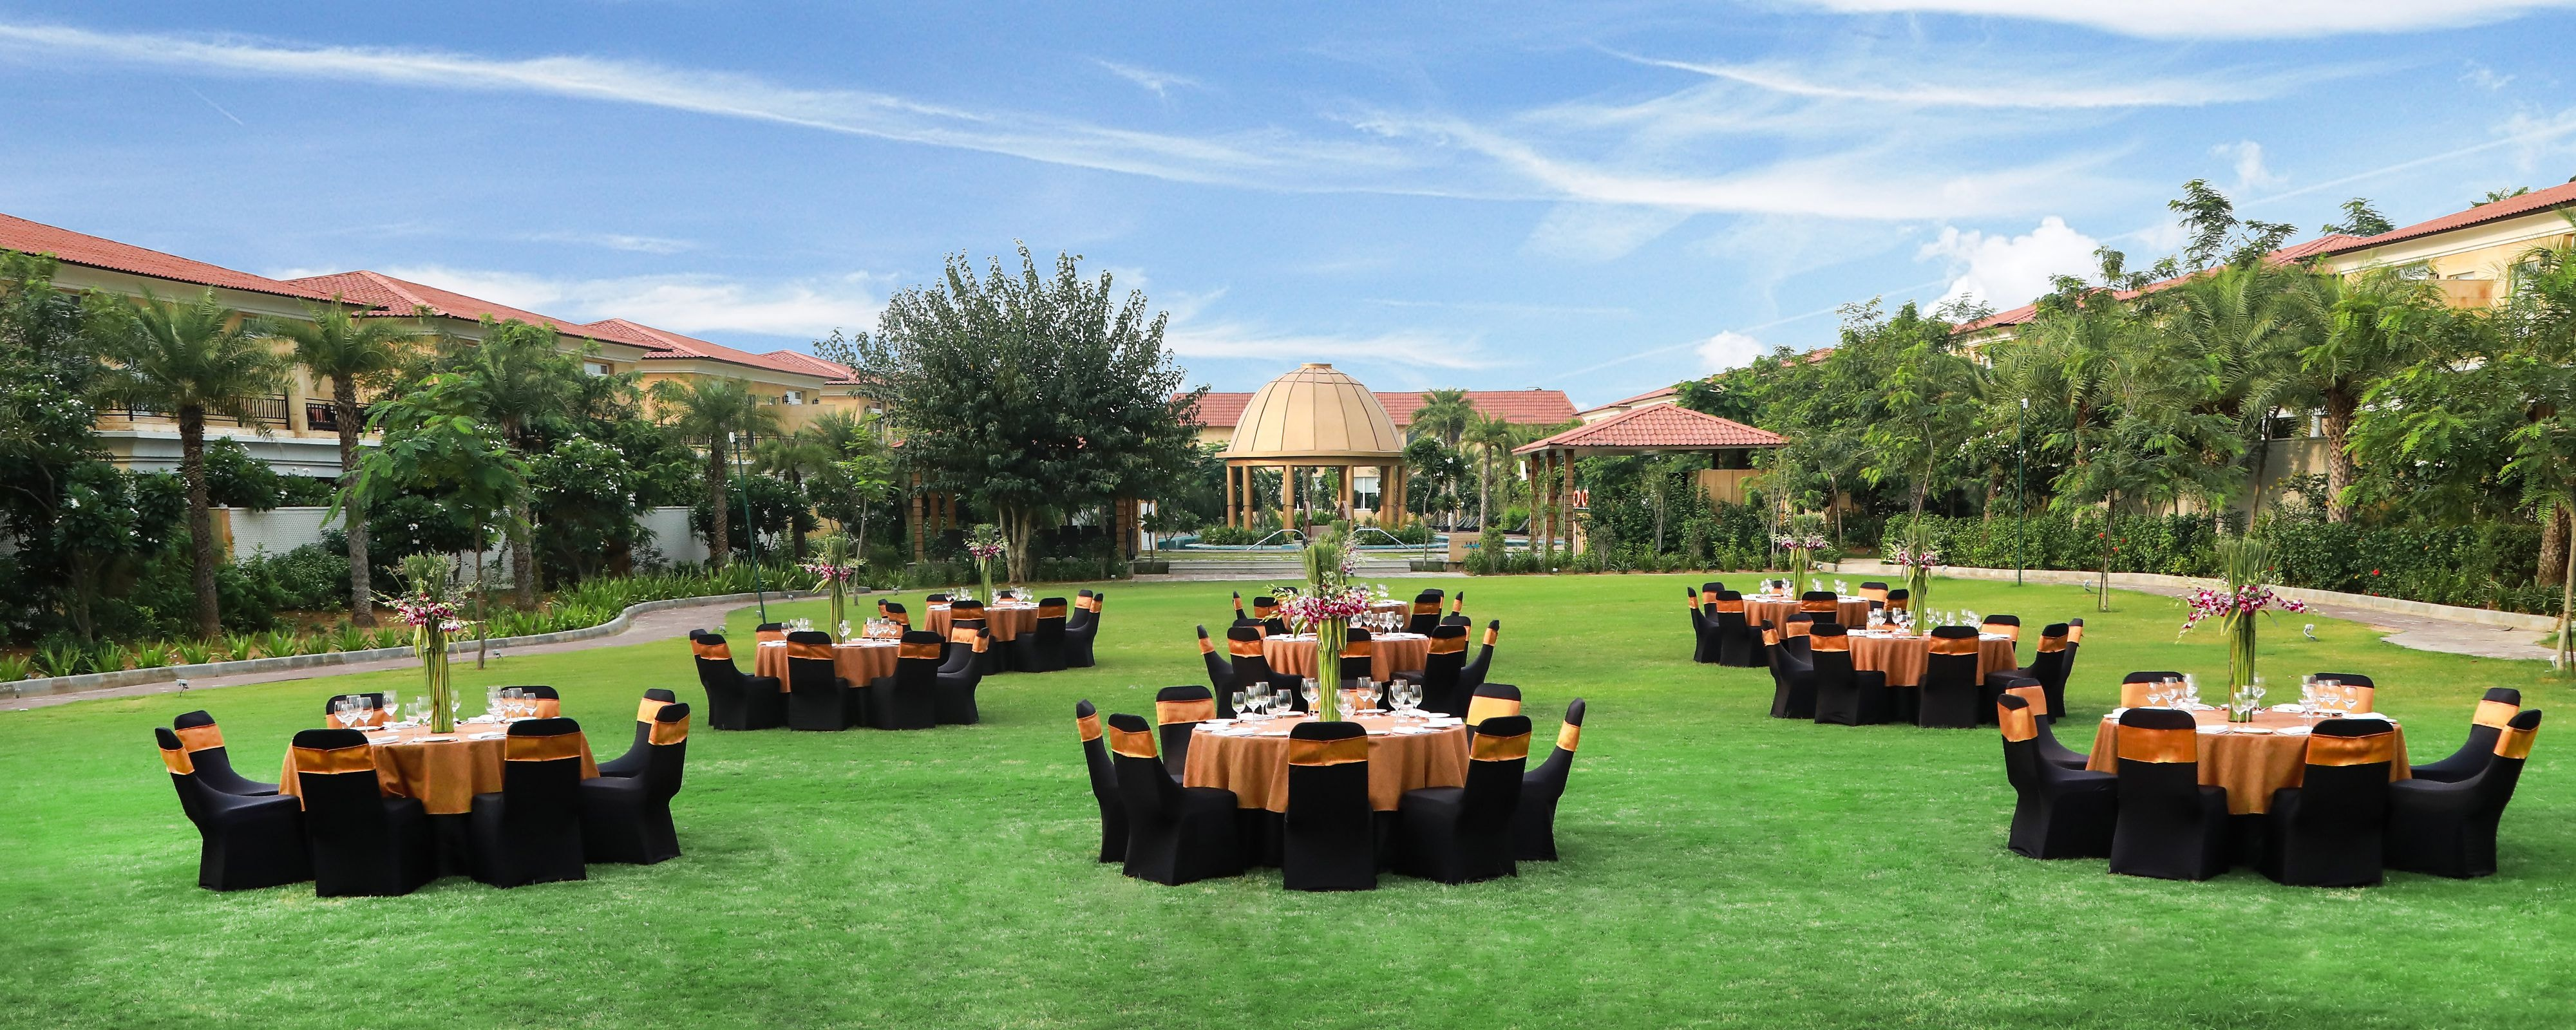 Central Lawn - Wedding Reception